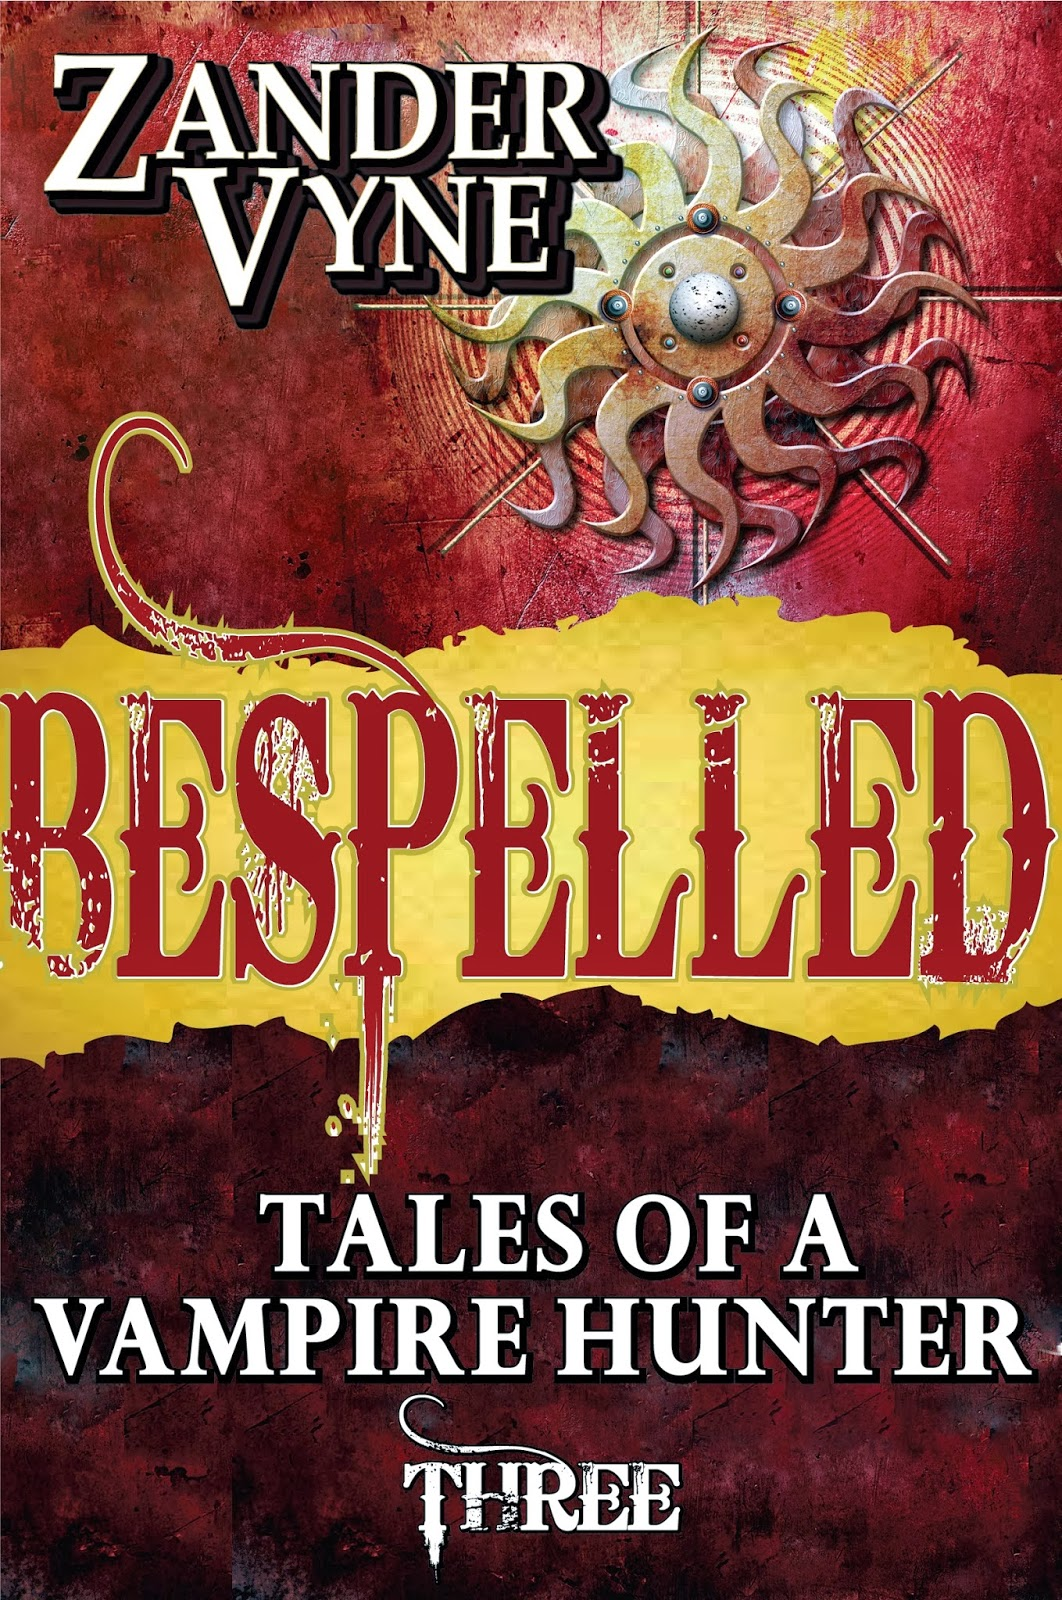 Bespelled: Tales of a Vampire Hunter #3